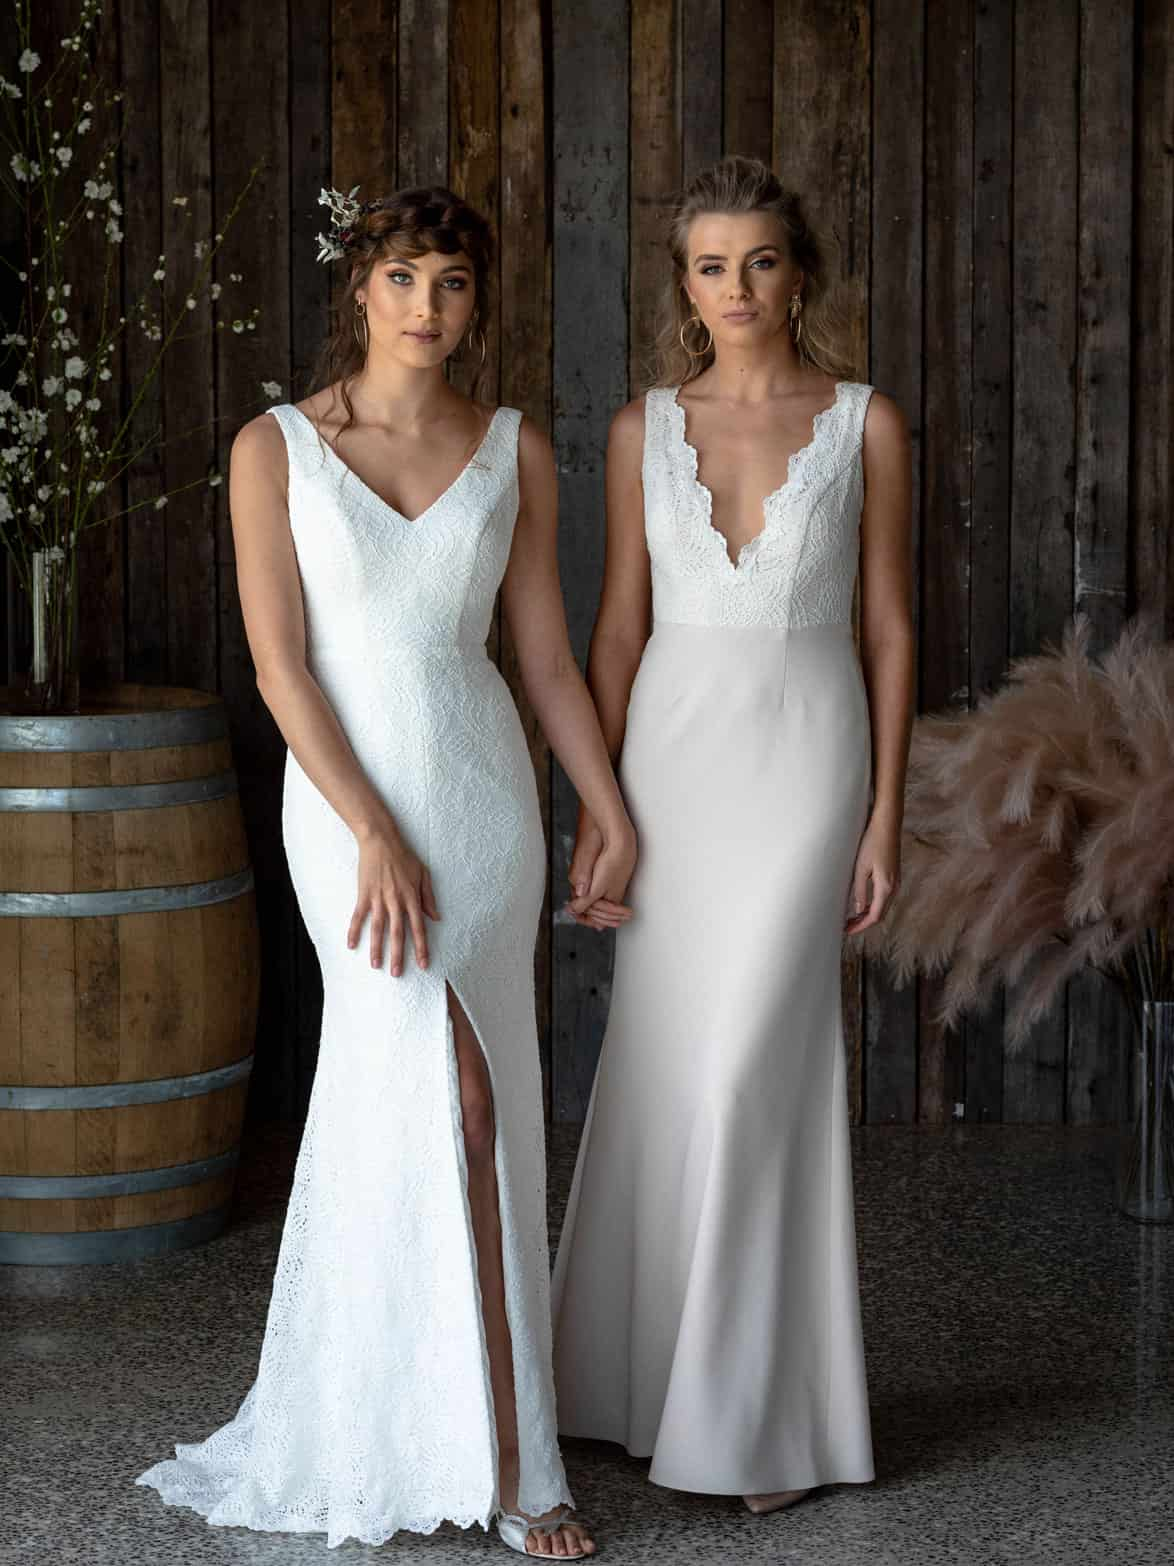 Bertossi Brides of Paddington Weddings new collection